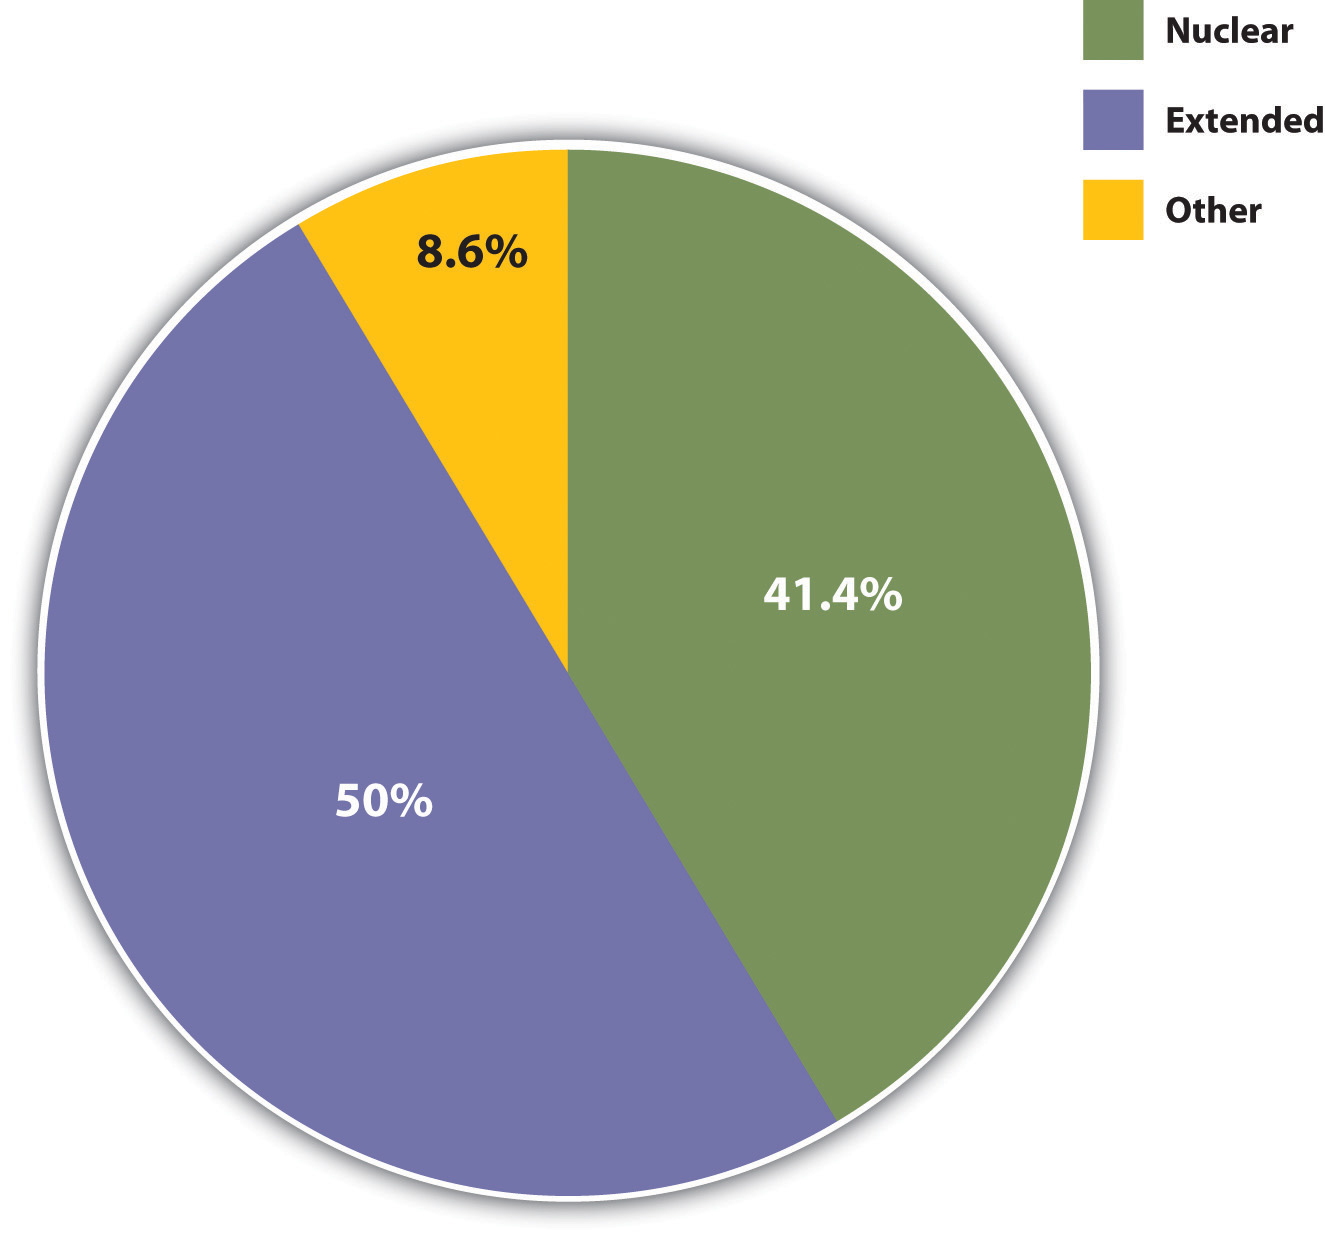 Types of Families in Preindustrial Societies: 50% extended, 41.4% nuclear, and 8.6% other